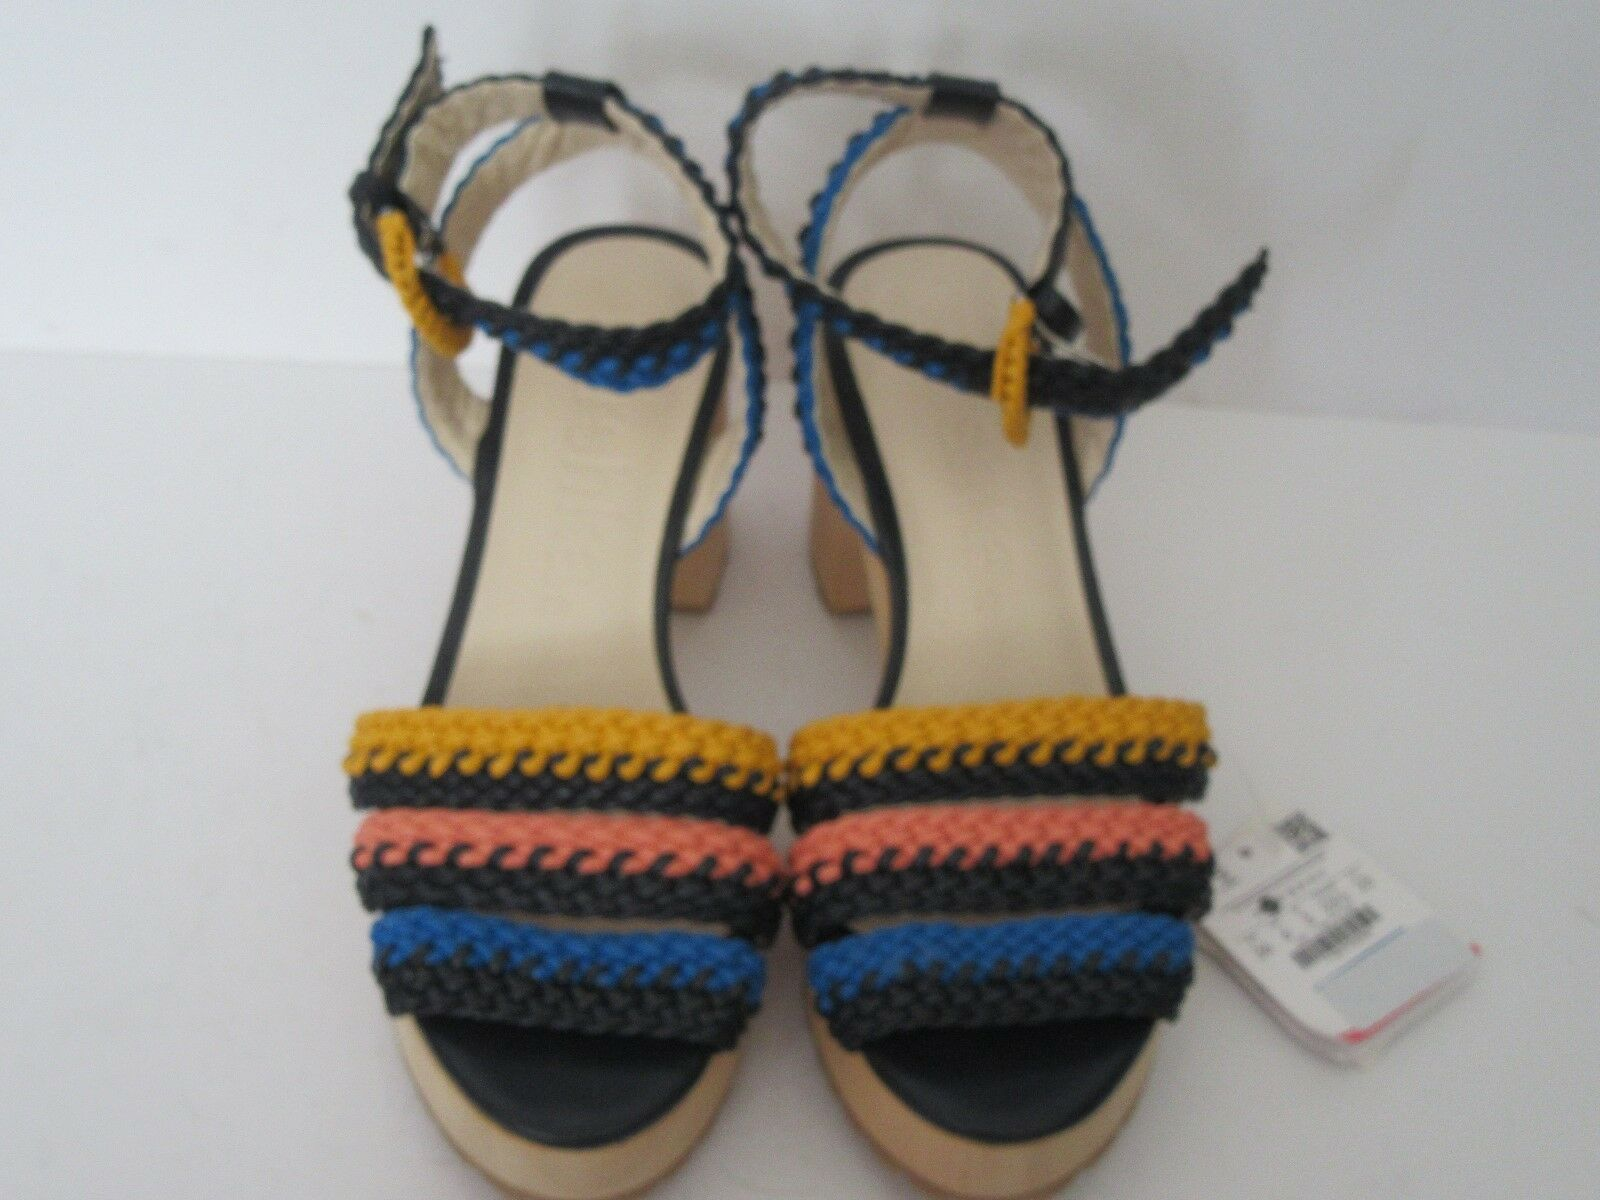 Bershka Femme MultiCouleure tissé STRAPY Bout Ouvert Sandale Taille 3 anklestrap New